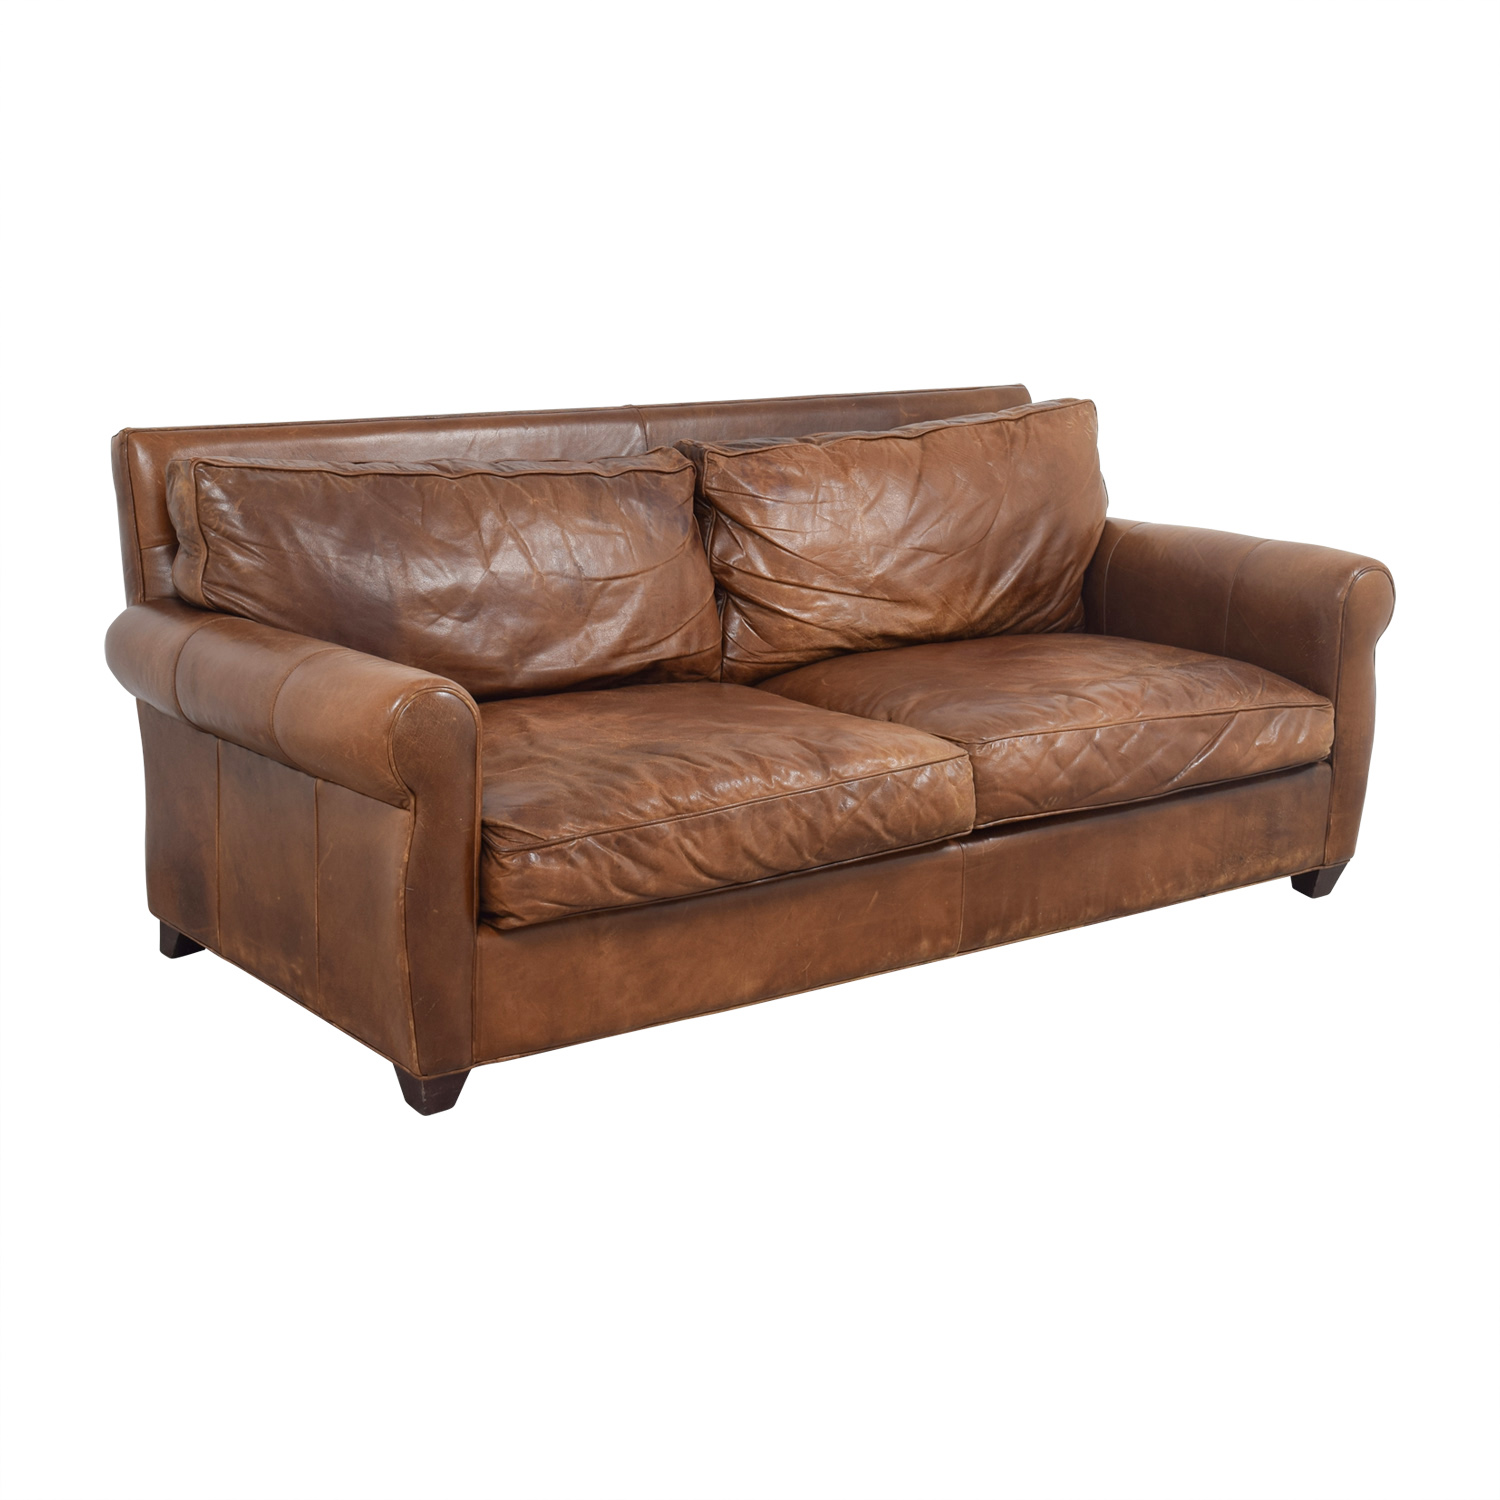 buy Arhaus Arhaus Rust Leather Two-Cushion Sofa online